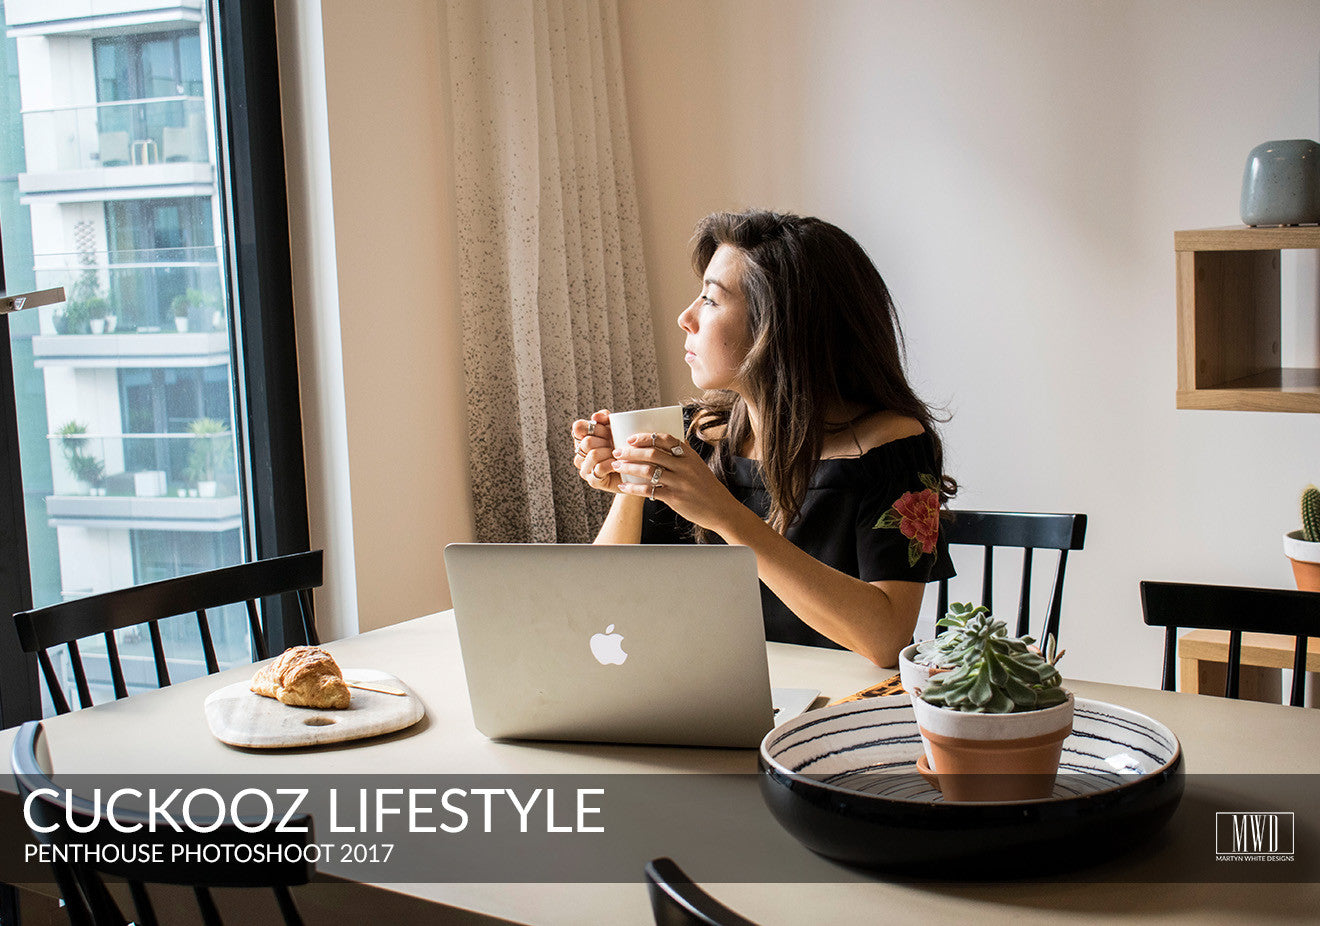 Cuckooz long stay serviced apartments London